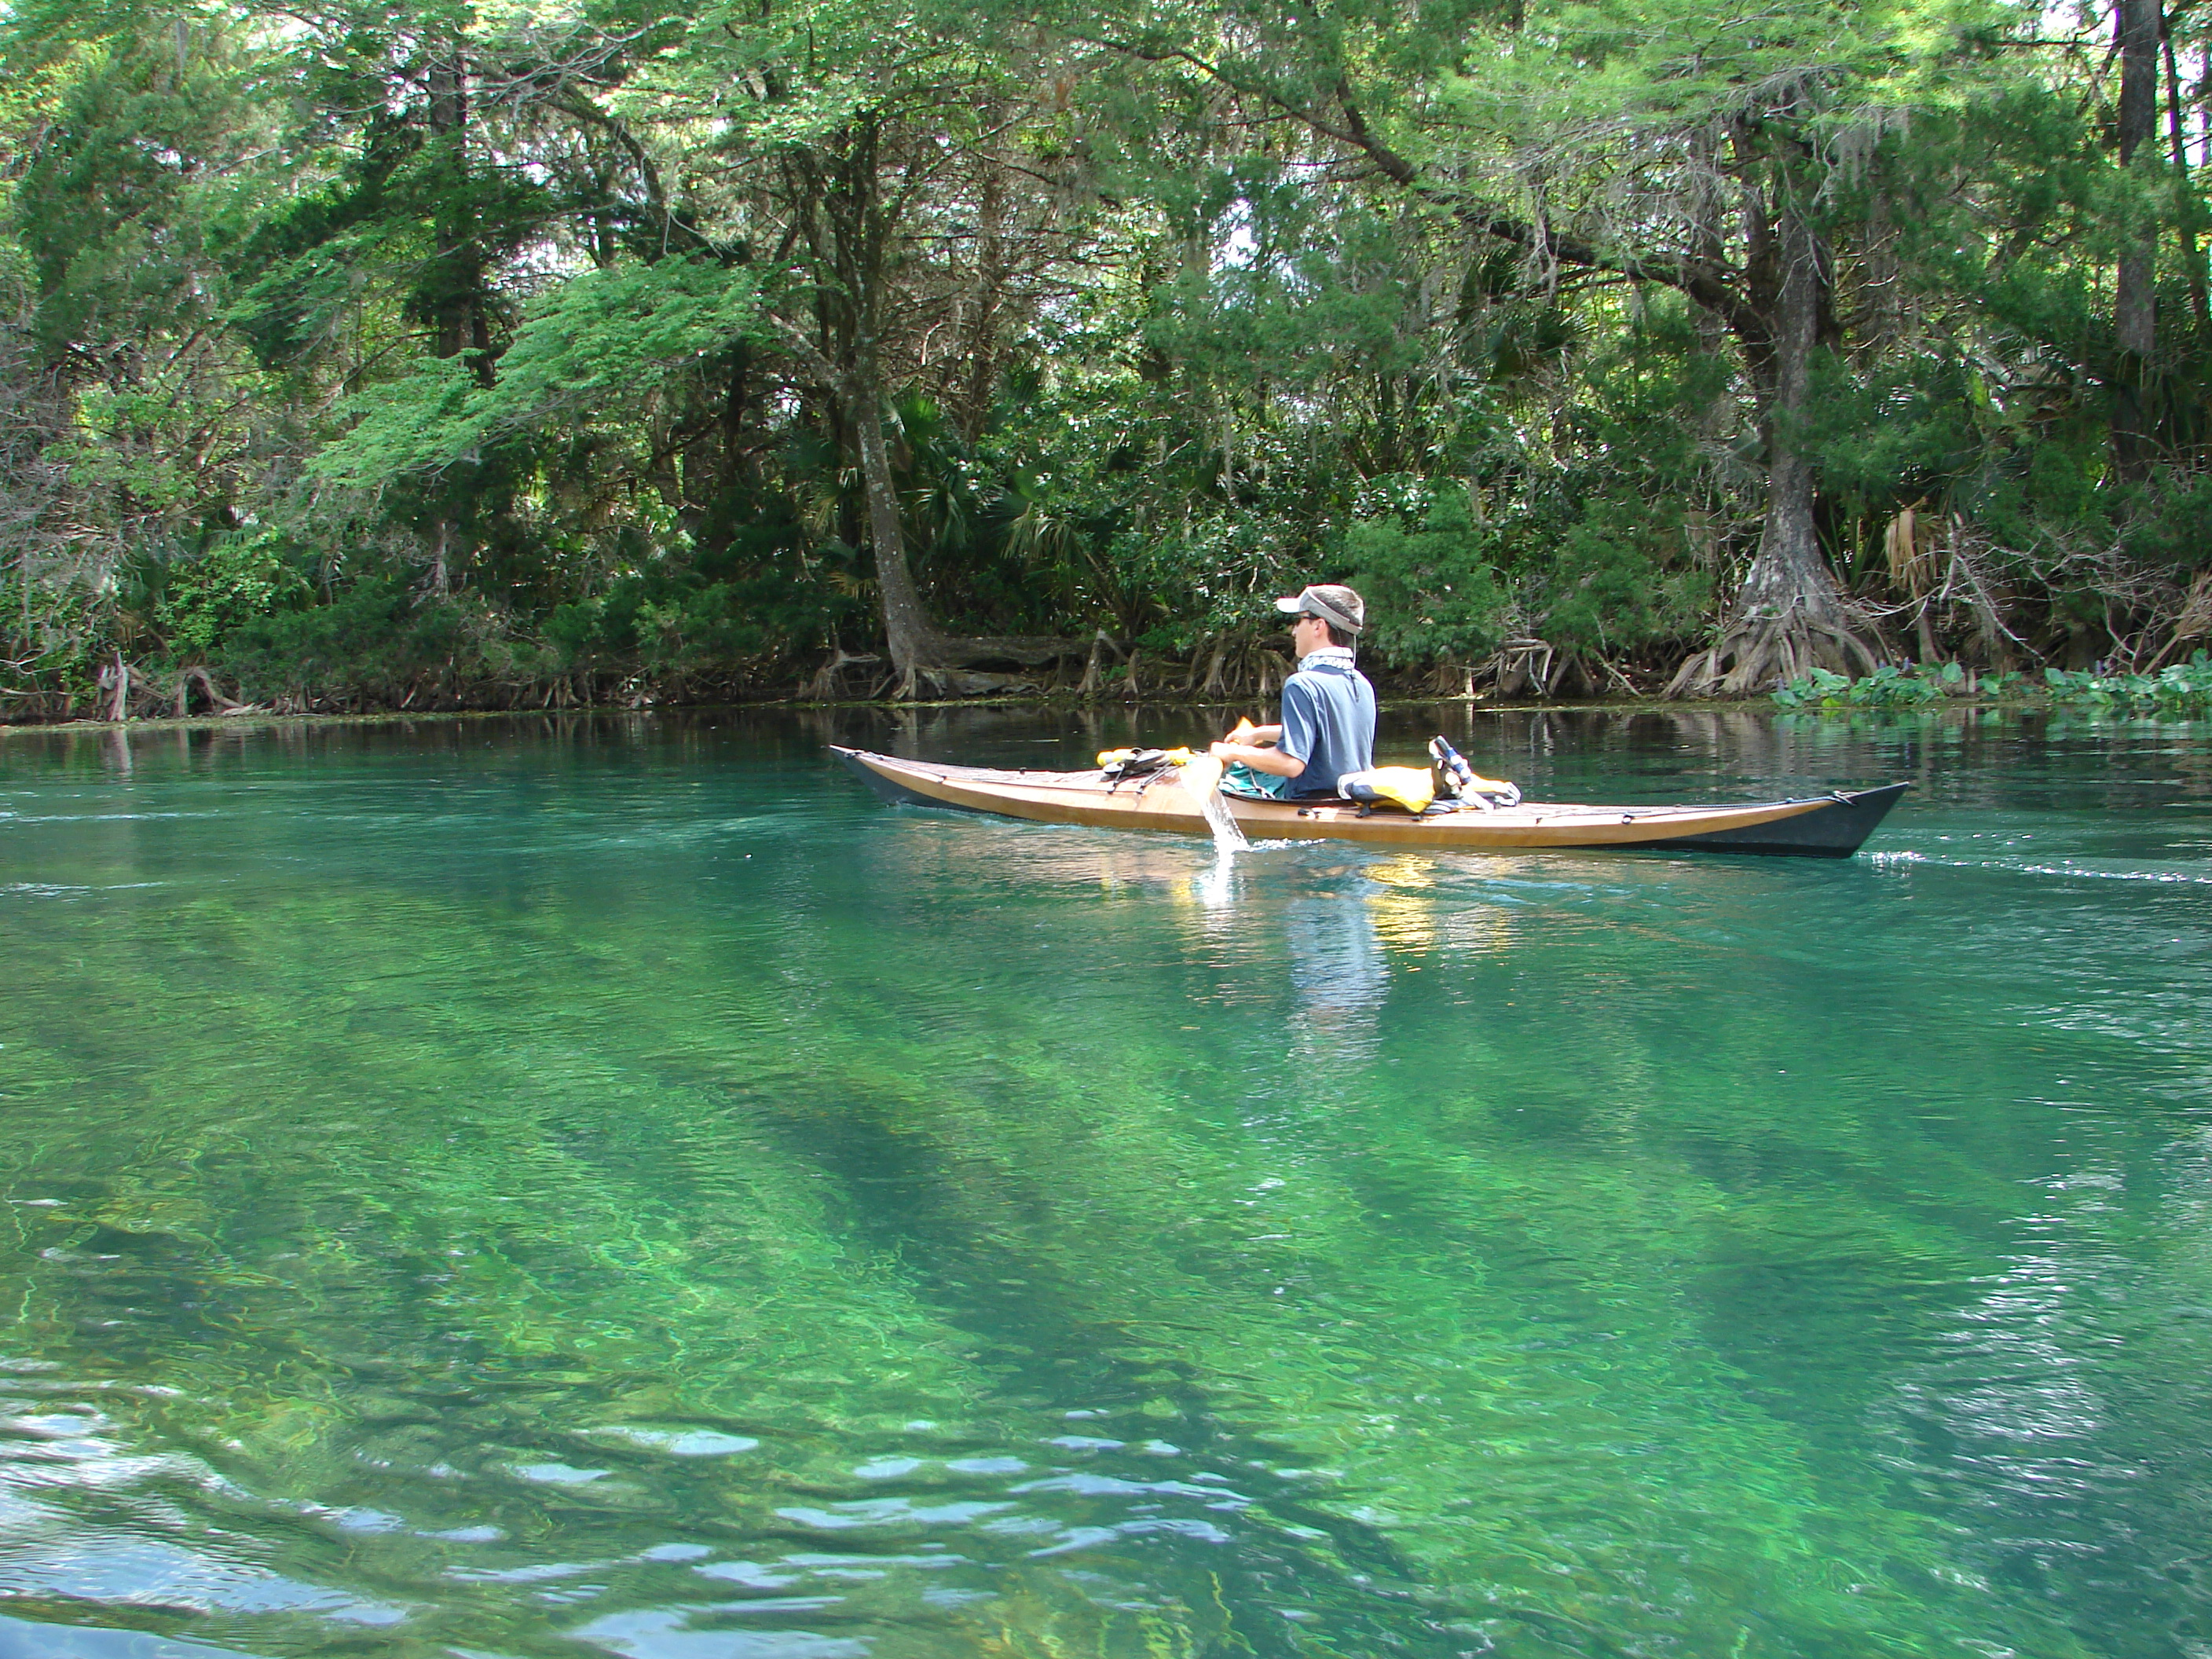 paddler on the silver river In: Judge's Ruling Threatens Silver Springs | Our Santa Fe River, Inc. | Protecting the Santa Fe River in North Florida